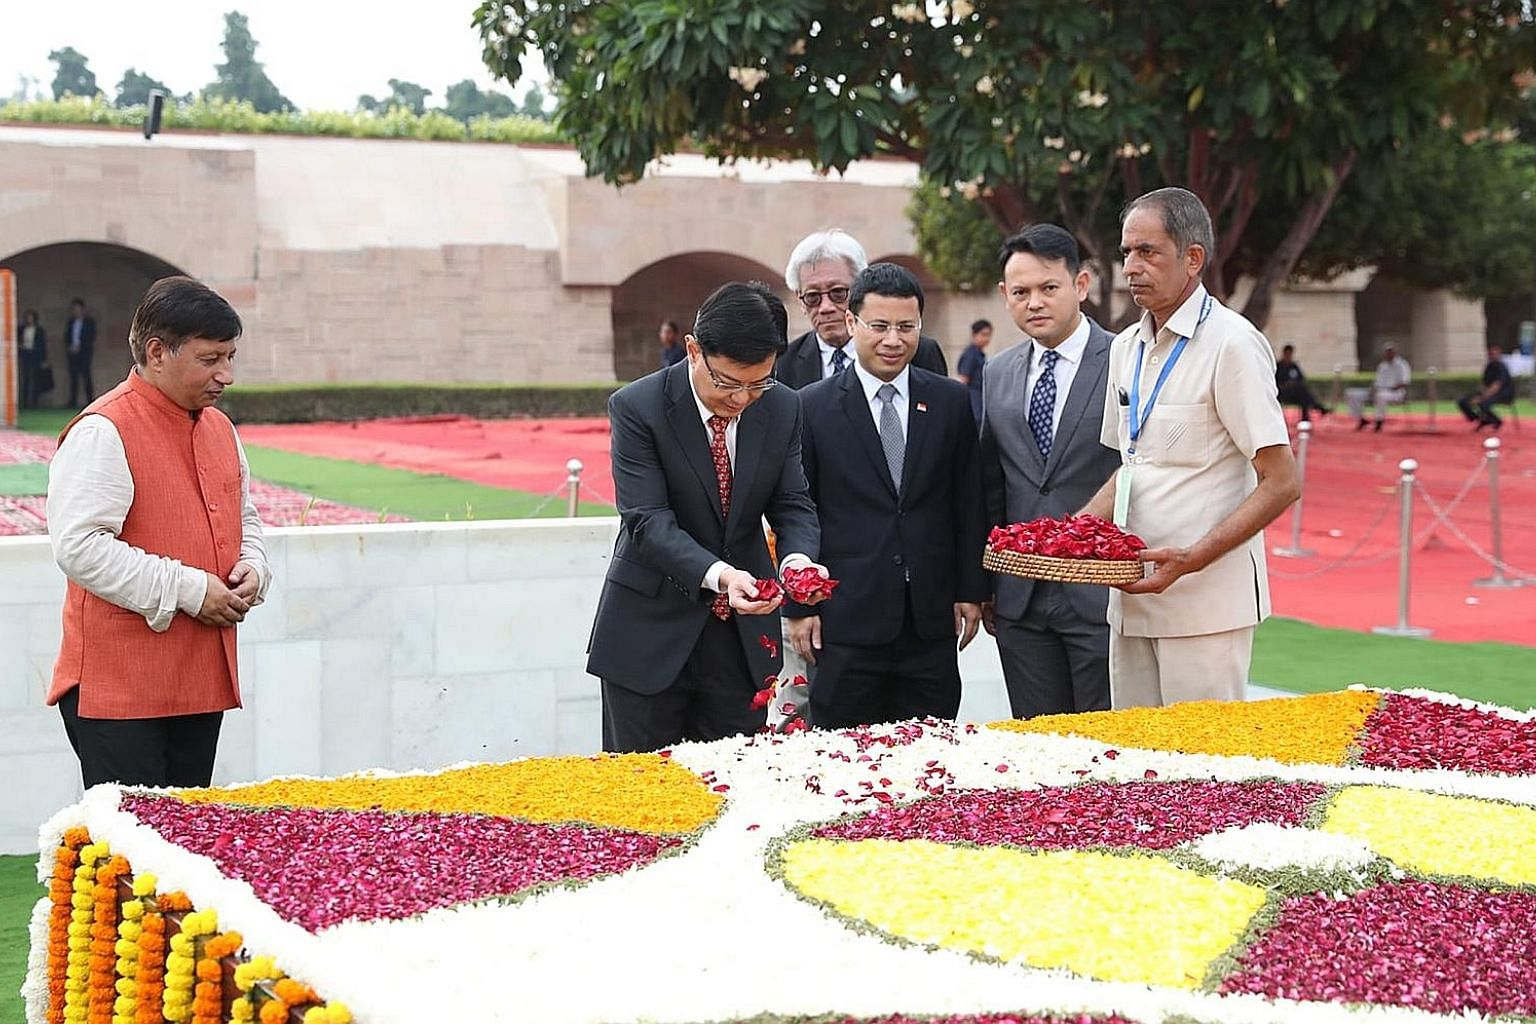 Deputy Prime Minister Heng Swee Keat paying tribute to Mahatma Gandhi at Raj Ghat, Delhi, on Gandhi's 150th birth anniversary. Beside him are Mr Desmond Lee, Minister for Social and Family Development and Second Minister for National Development, and